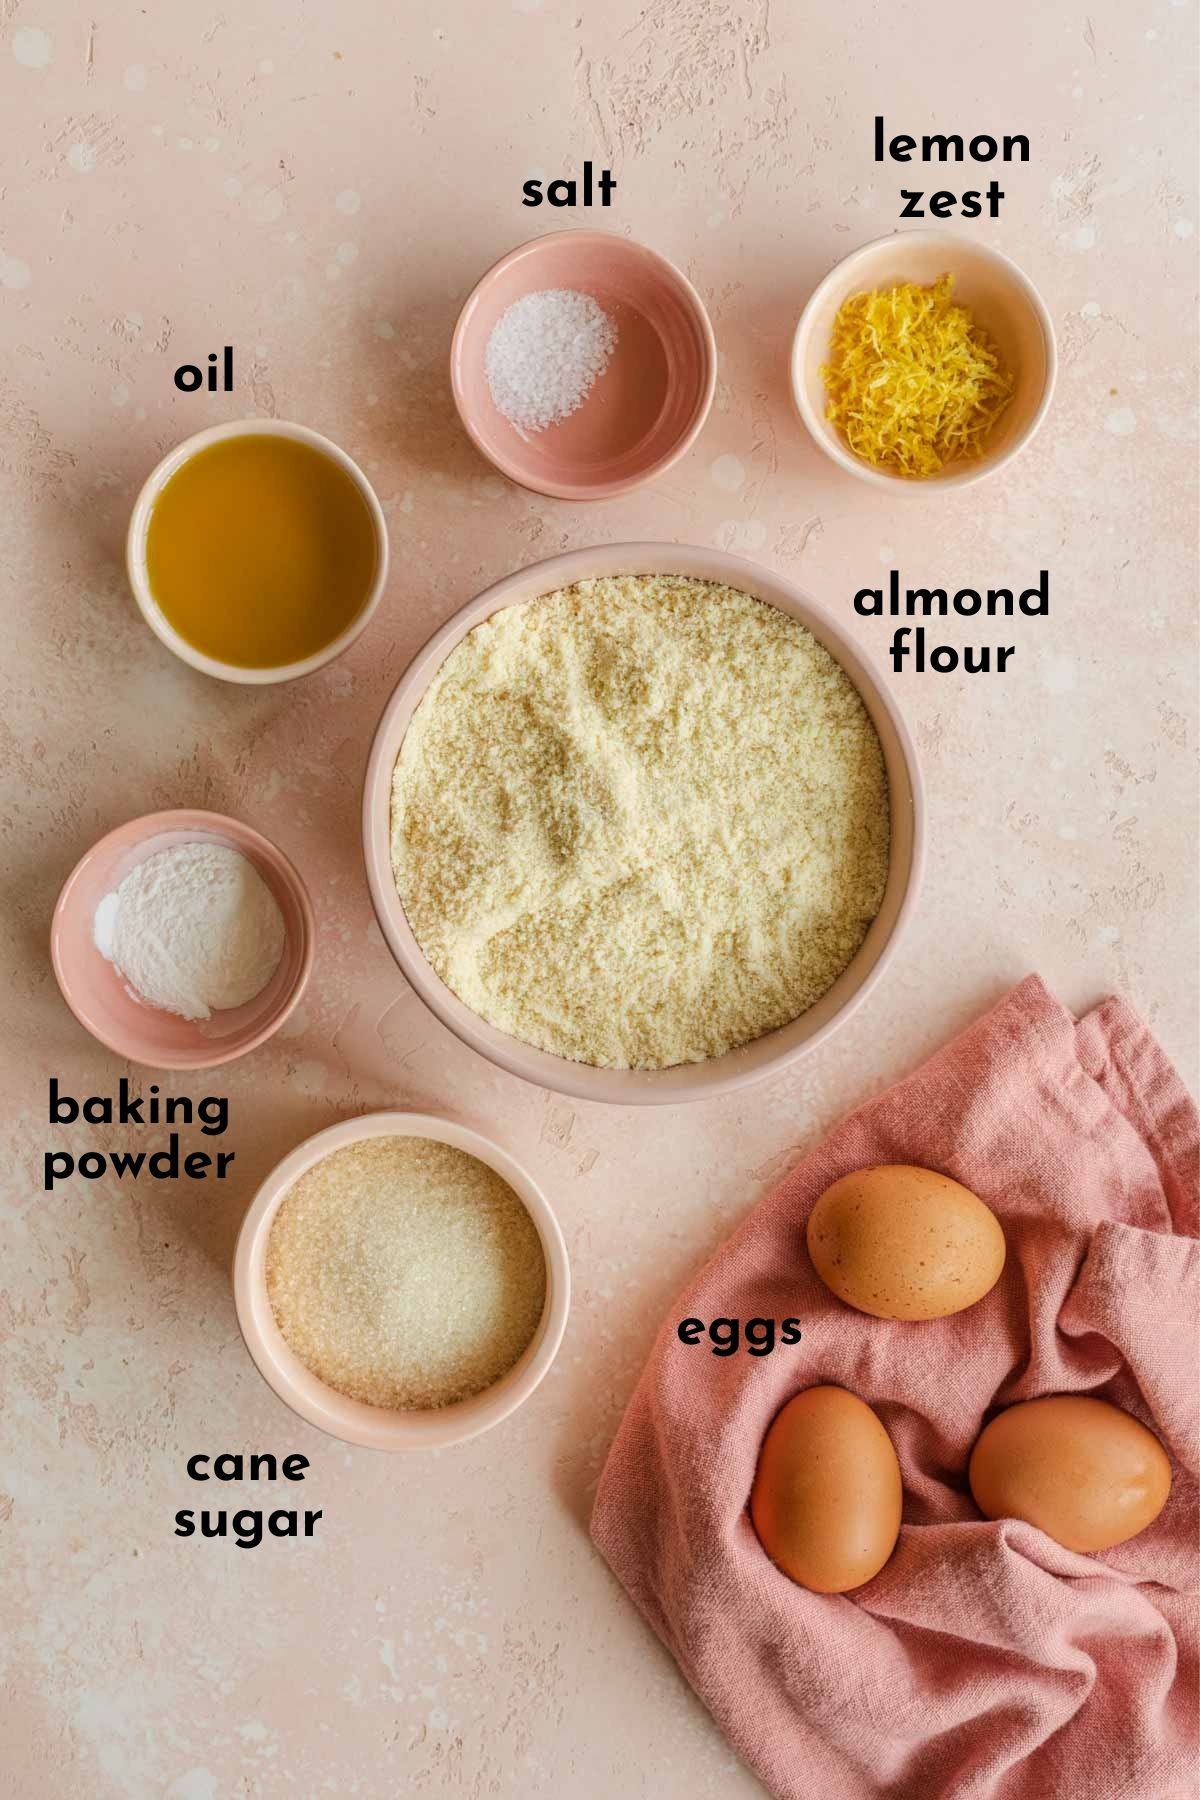 Ingredients for almond flour cake arranged individually and labelled.